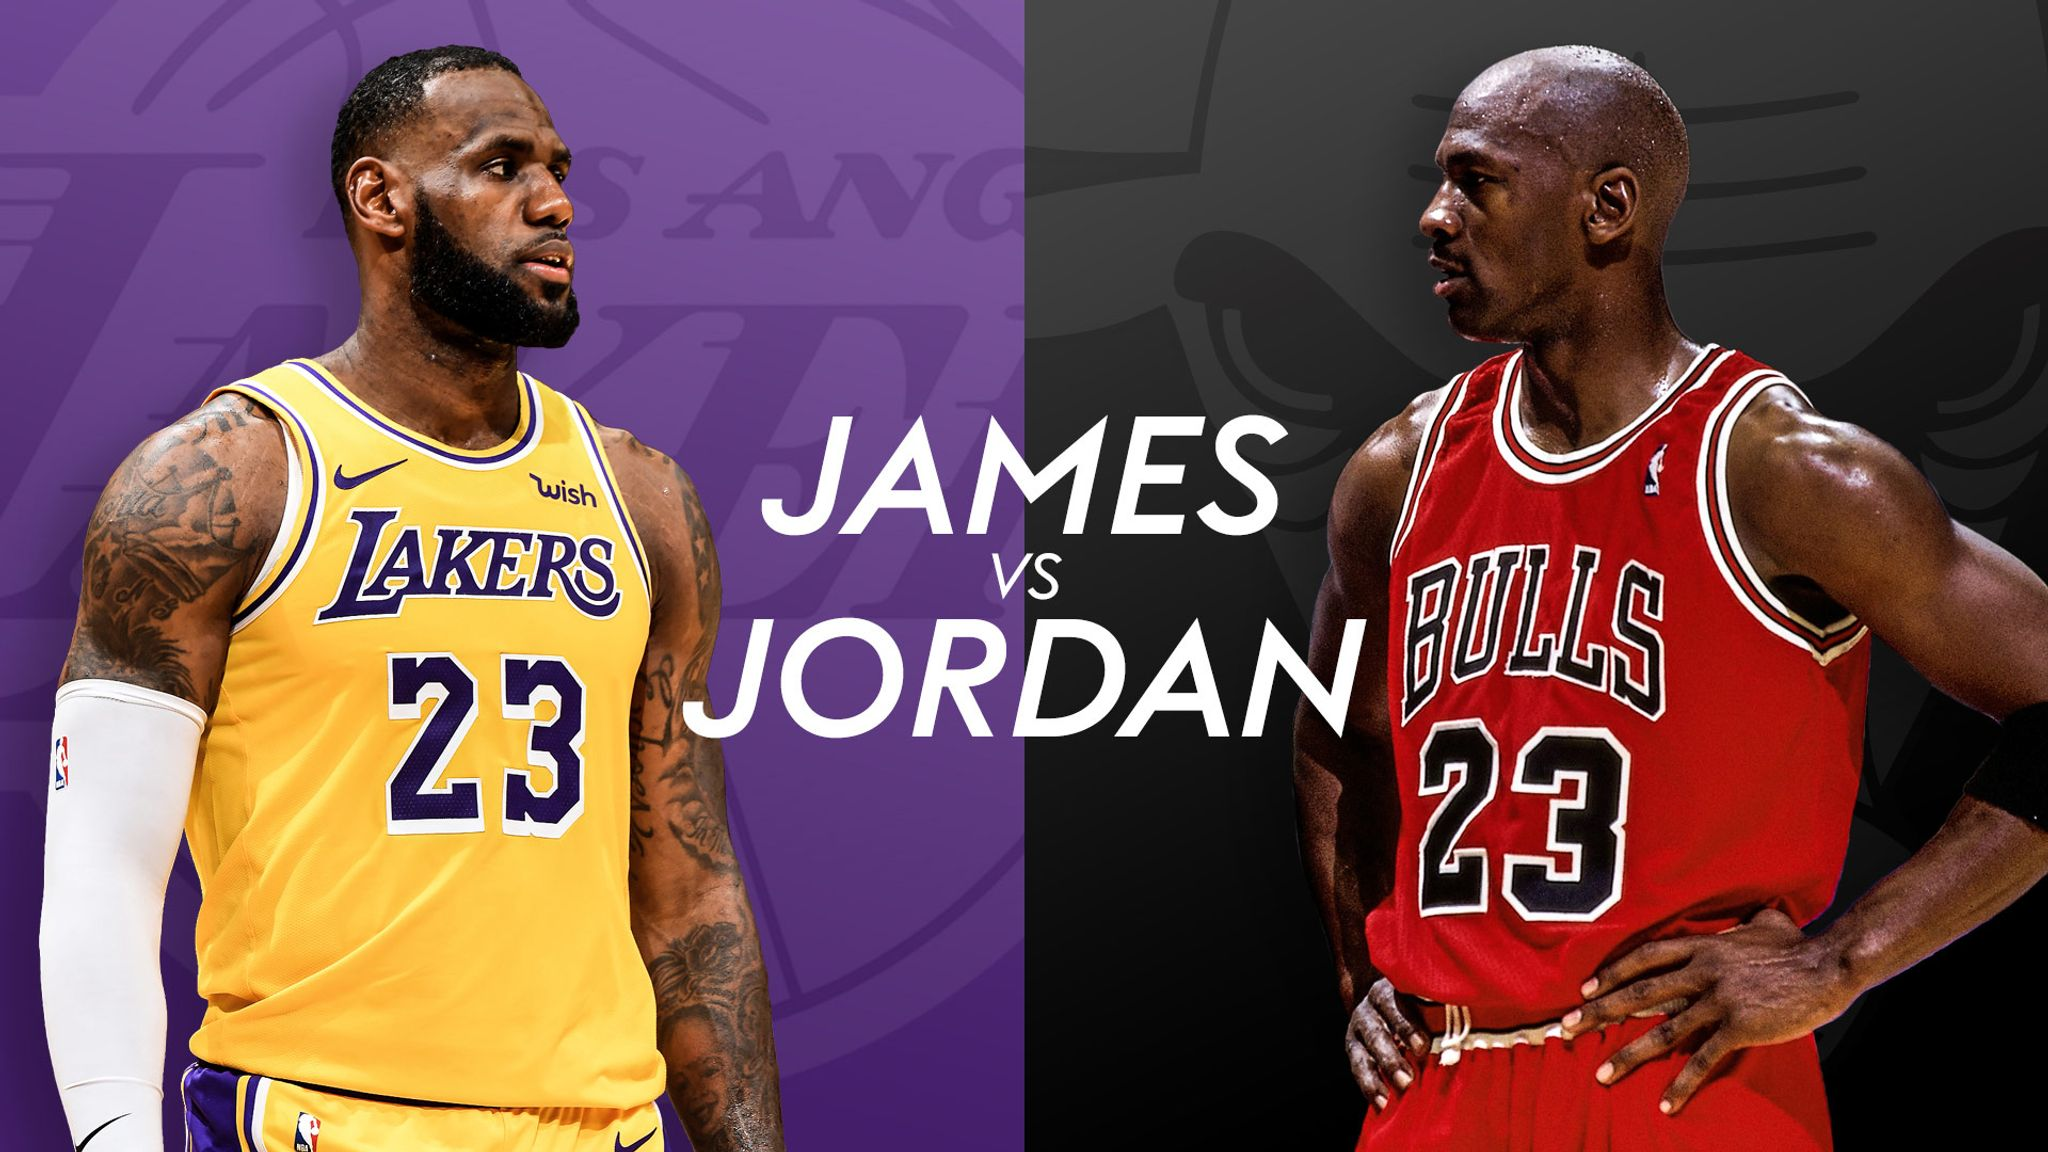 789fd5bf92e LeBron James vs Michael Jordan  Have your say on the NBA s greatest debate